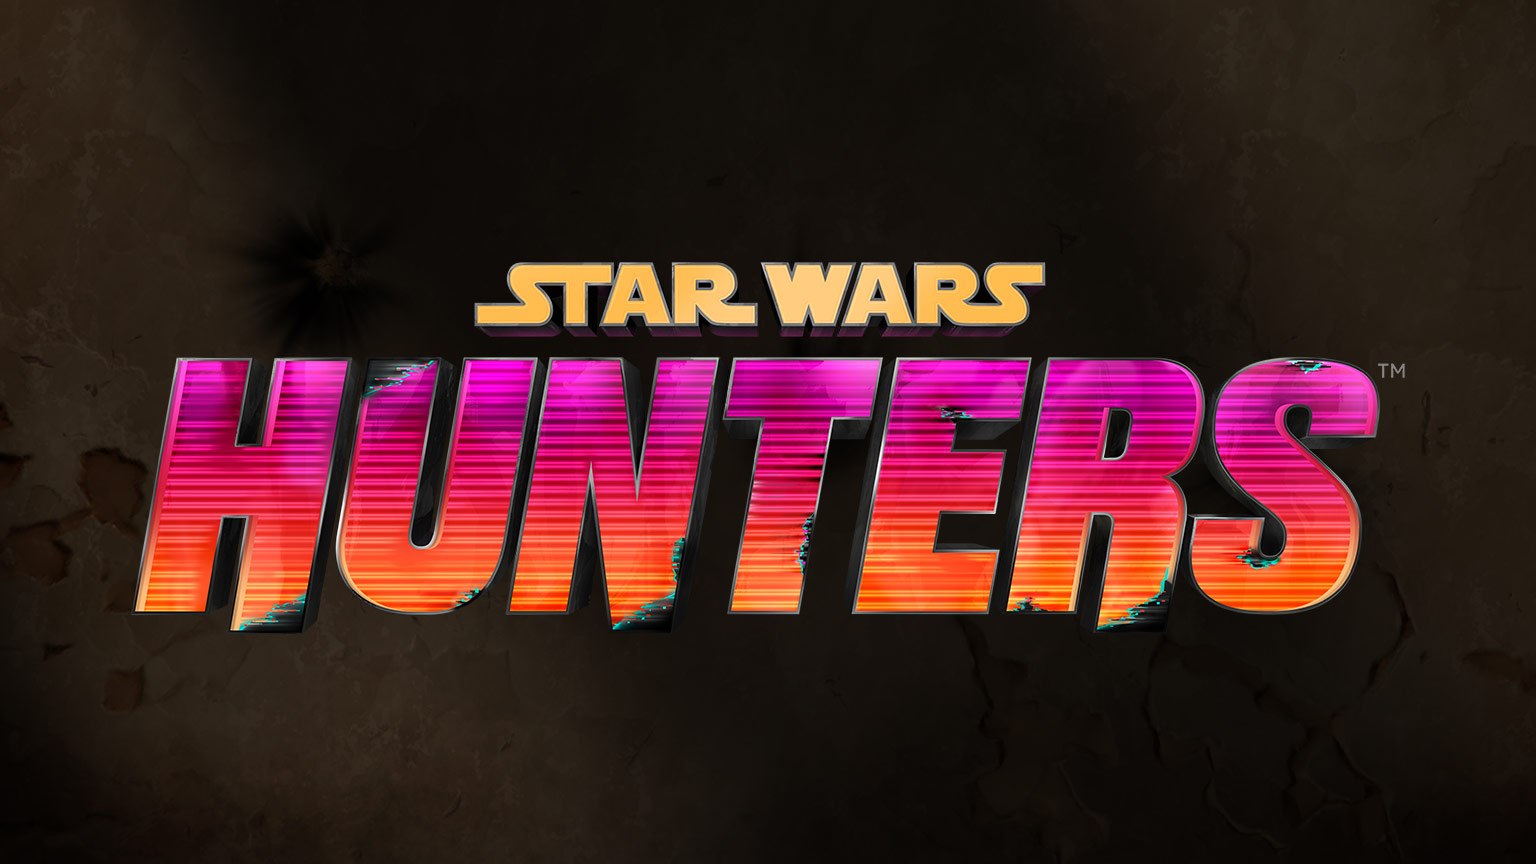 Star Wars - Hunters: New Free2Play game announced for Switch and Mobile